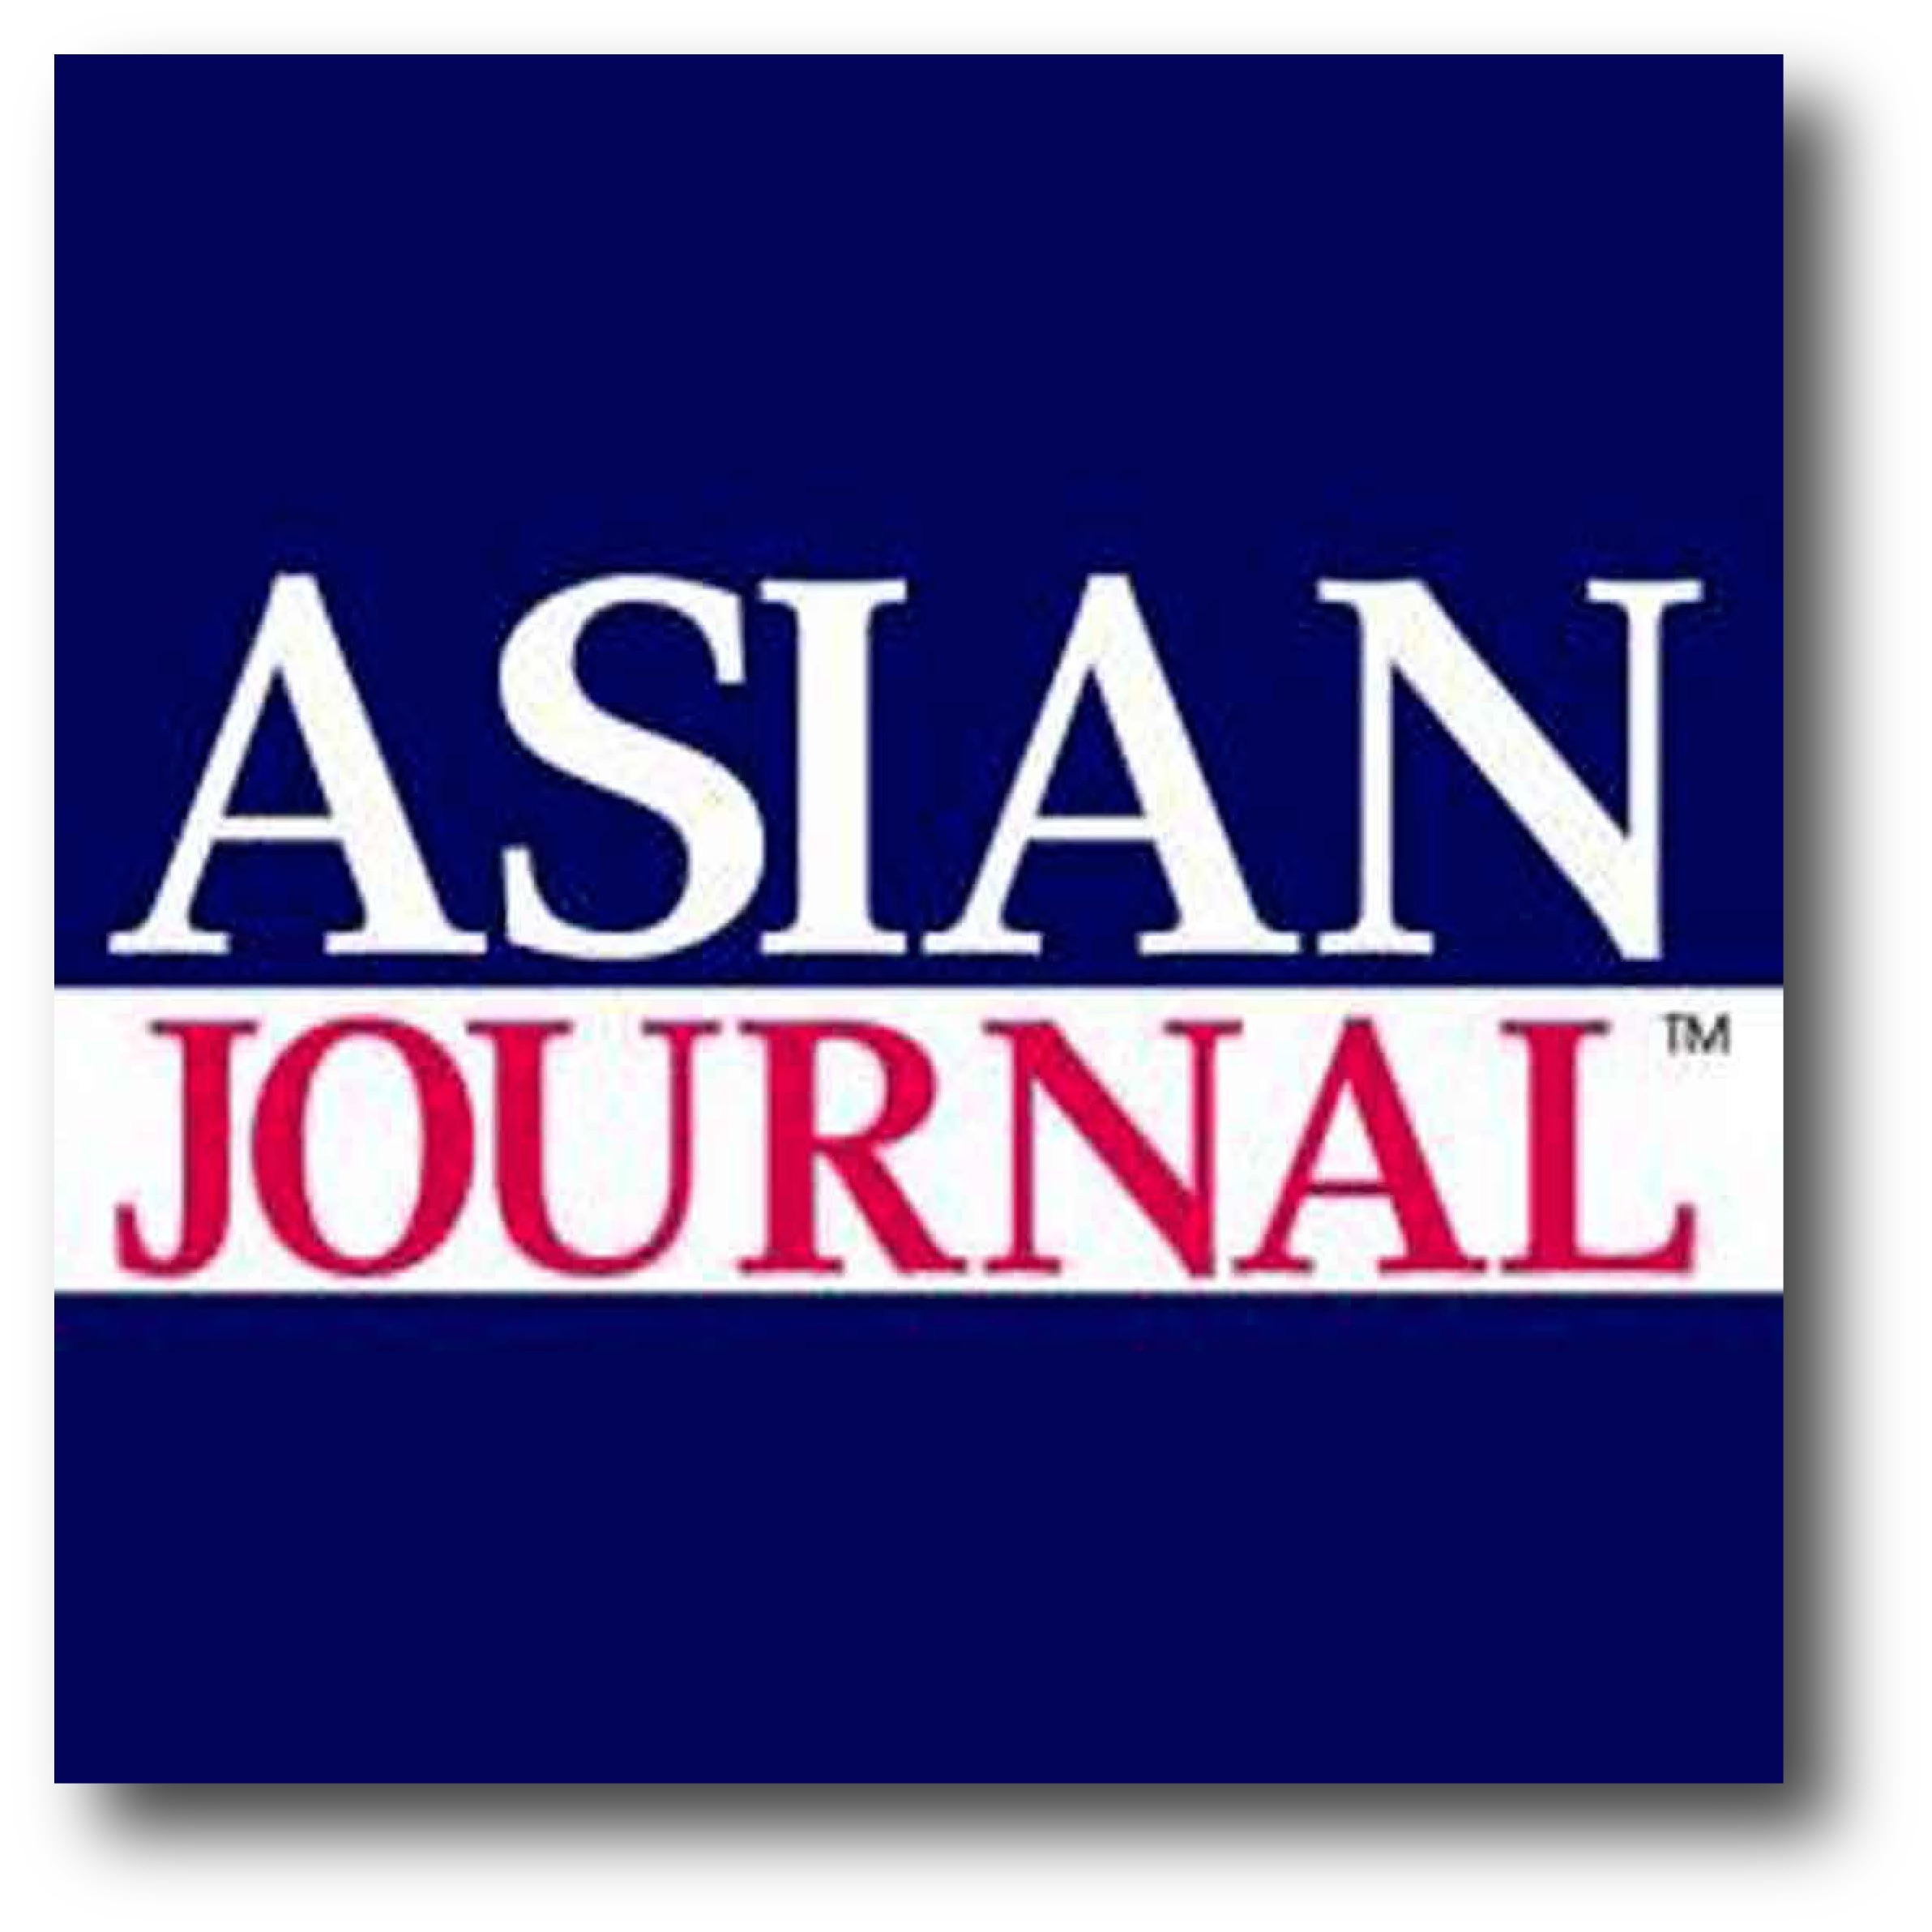 Arte Journal Junior Fr Asian Journal Media Group Your News Your Community Your Journal